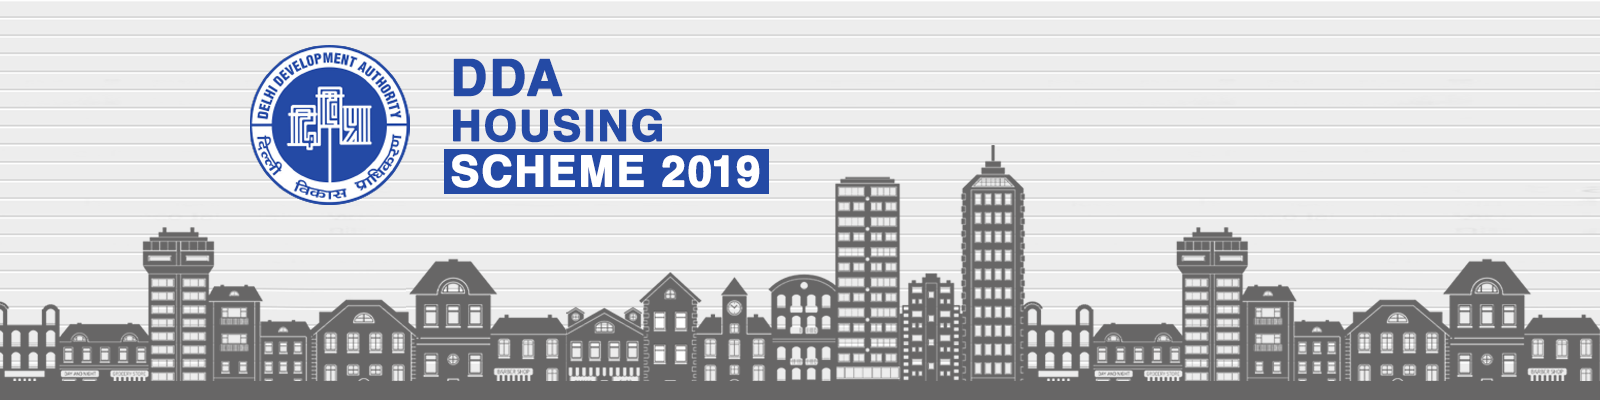 Anything You Wanted To Know About DDA Housing Scheme 2019